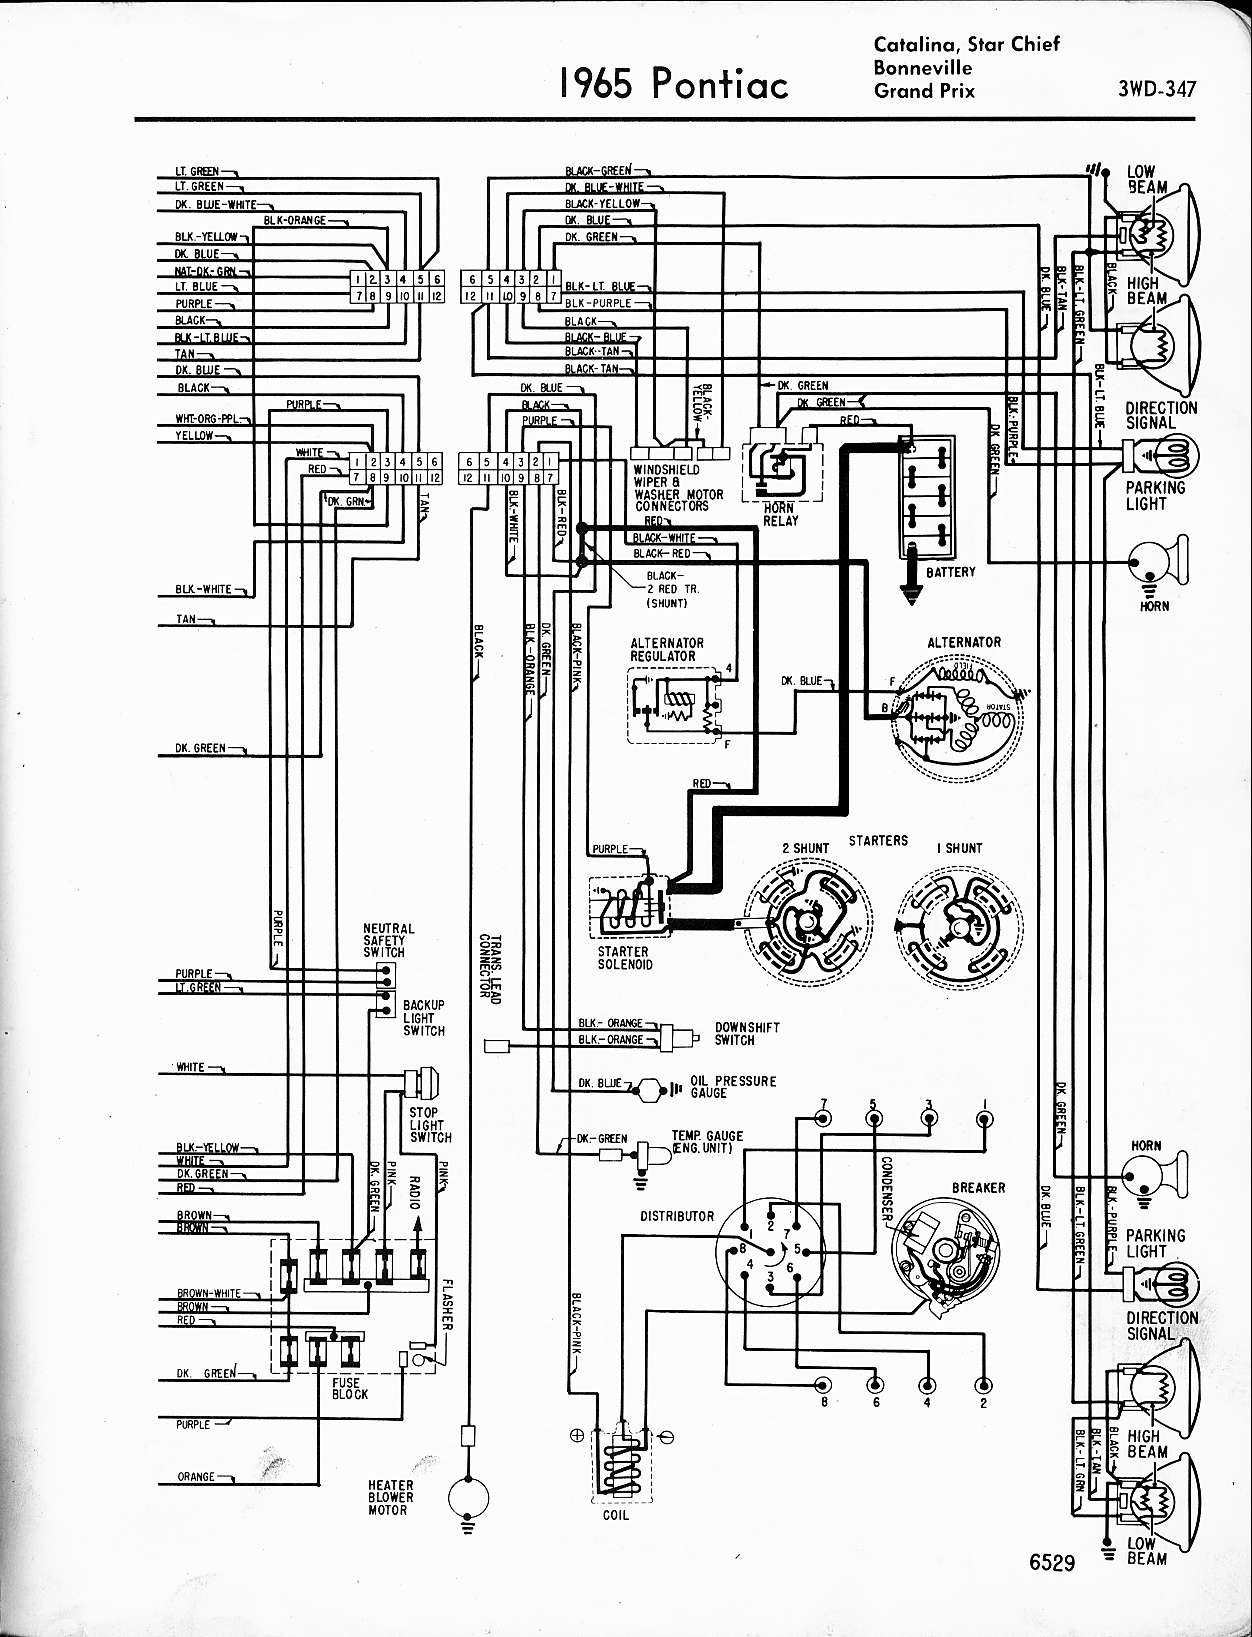 MWire5765 347 pontiac wiring diagrams pontiac grand prix wiring diagrams \u2022 free 1965 pontiac grand prix wiring diagram at crackthecode.co